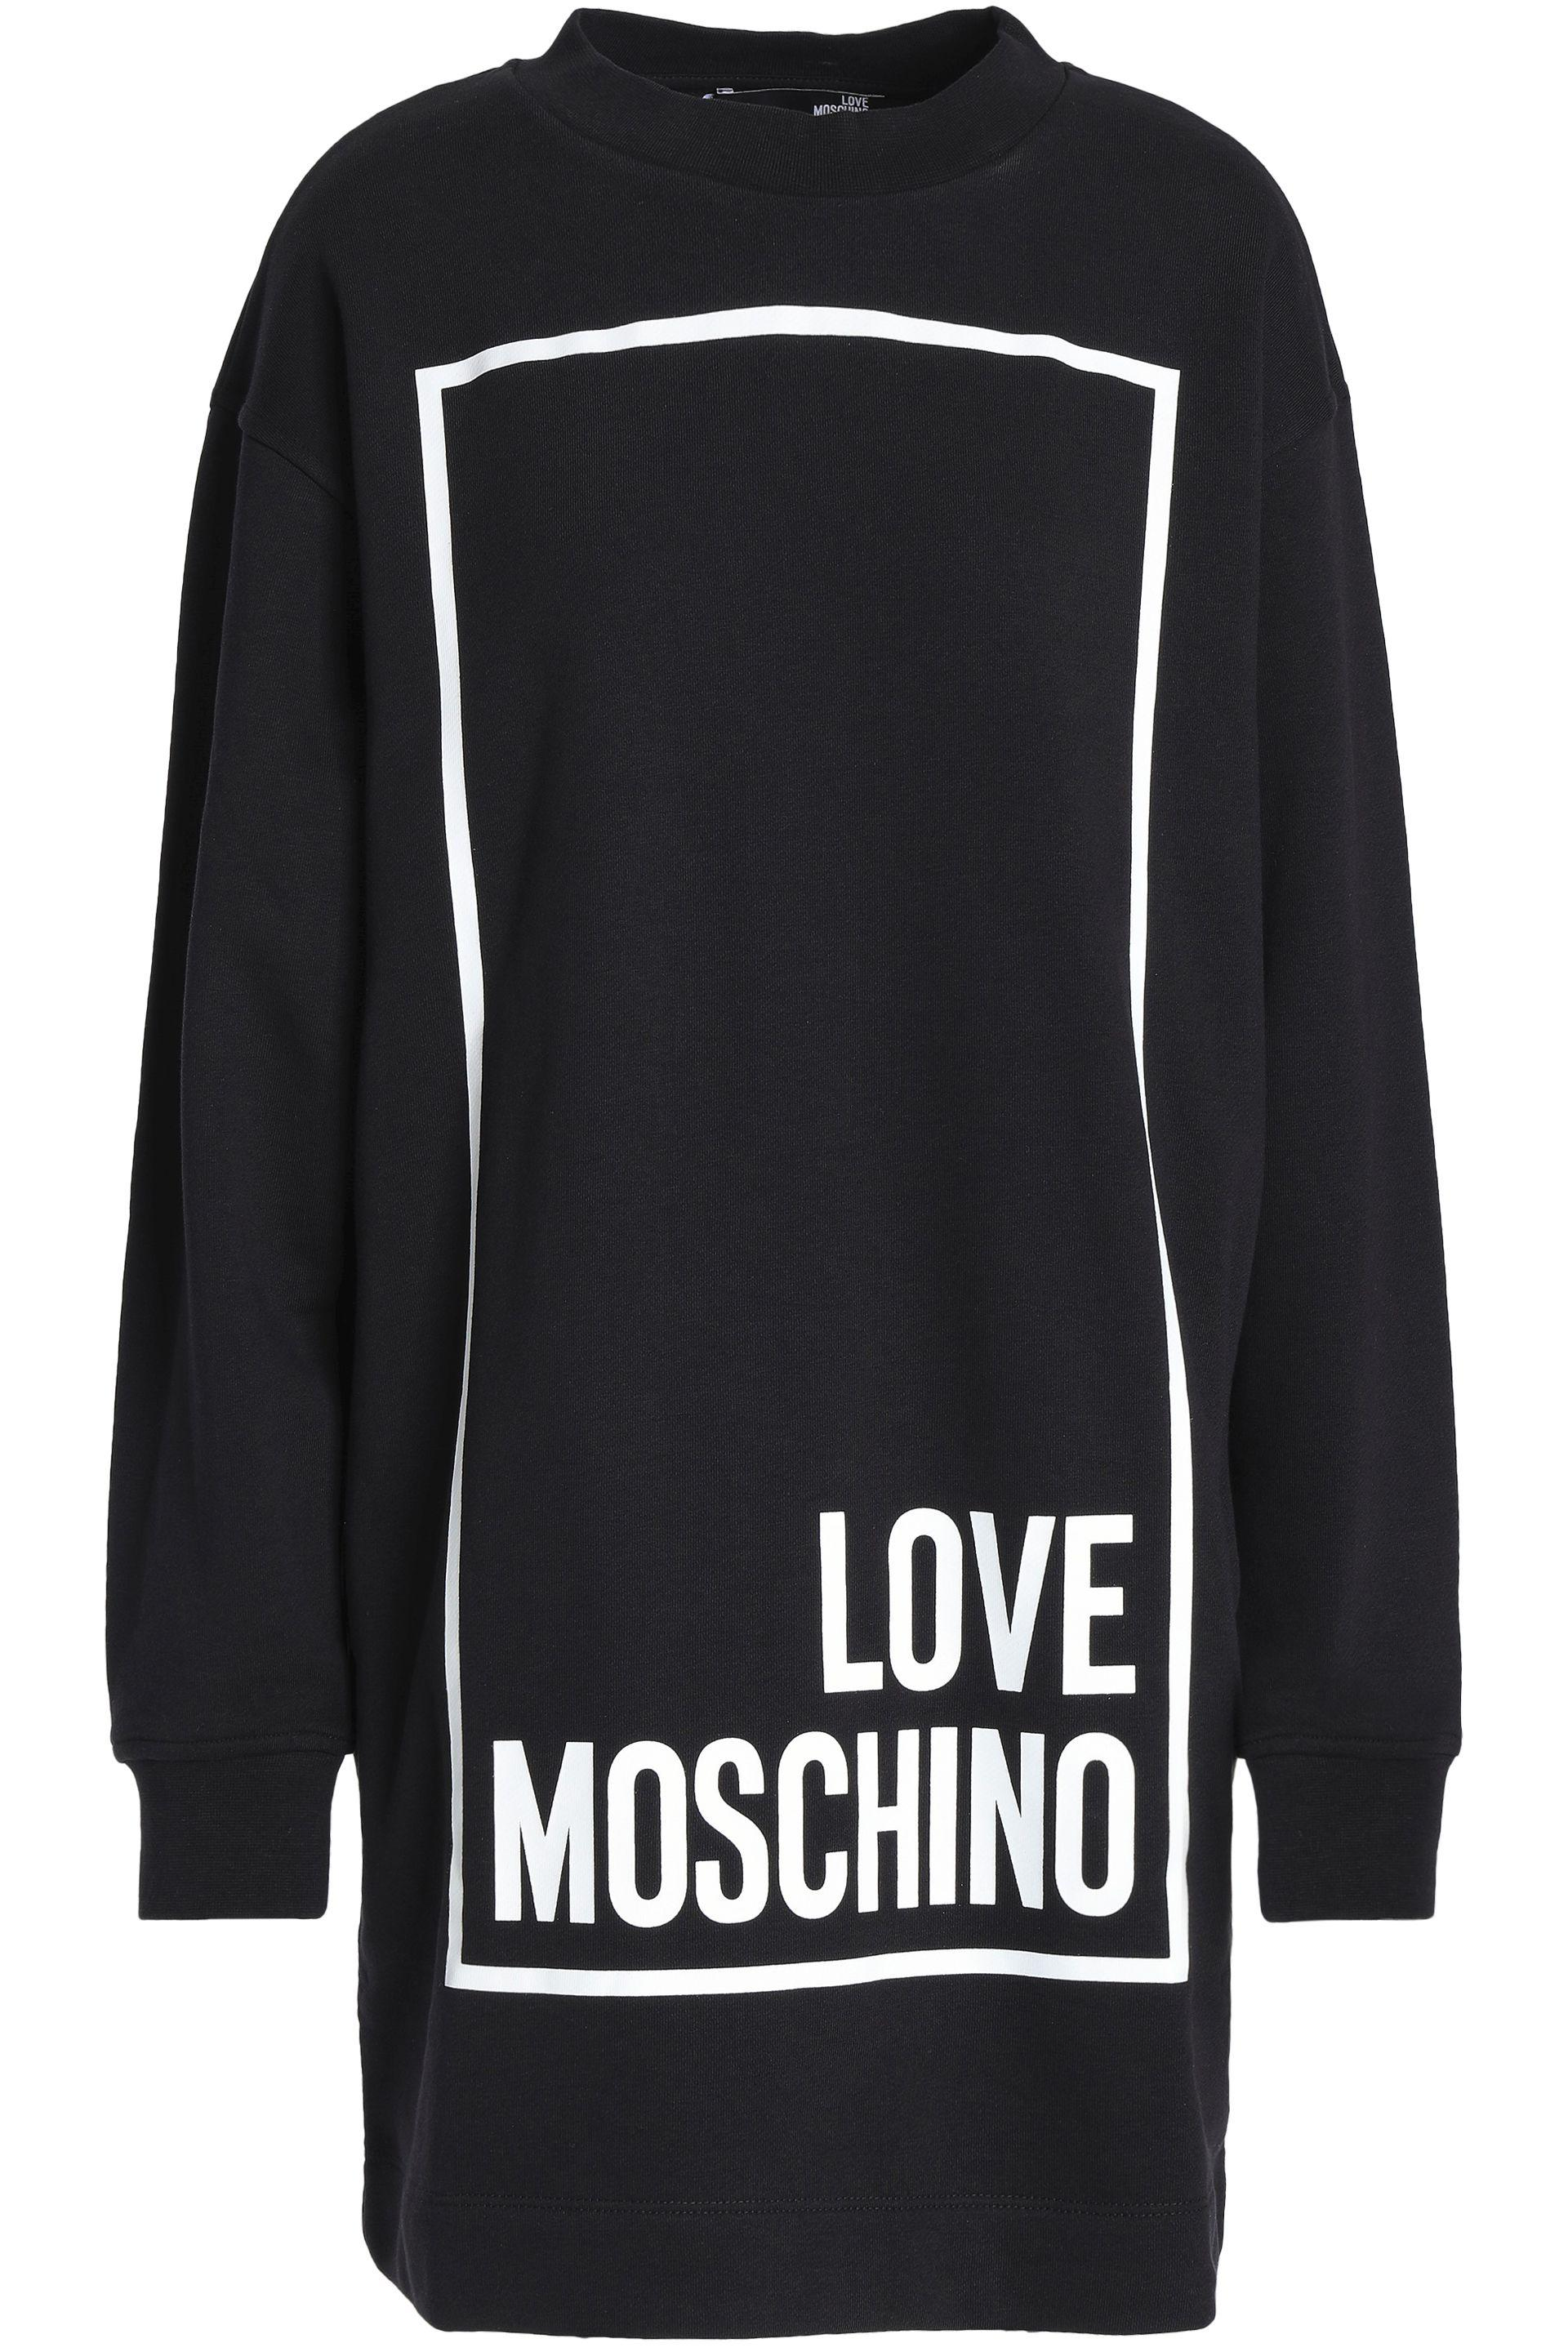 Stamp Goes On What Side Love Moschino Printed Cotton Blend Jersey Mini Dress In